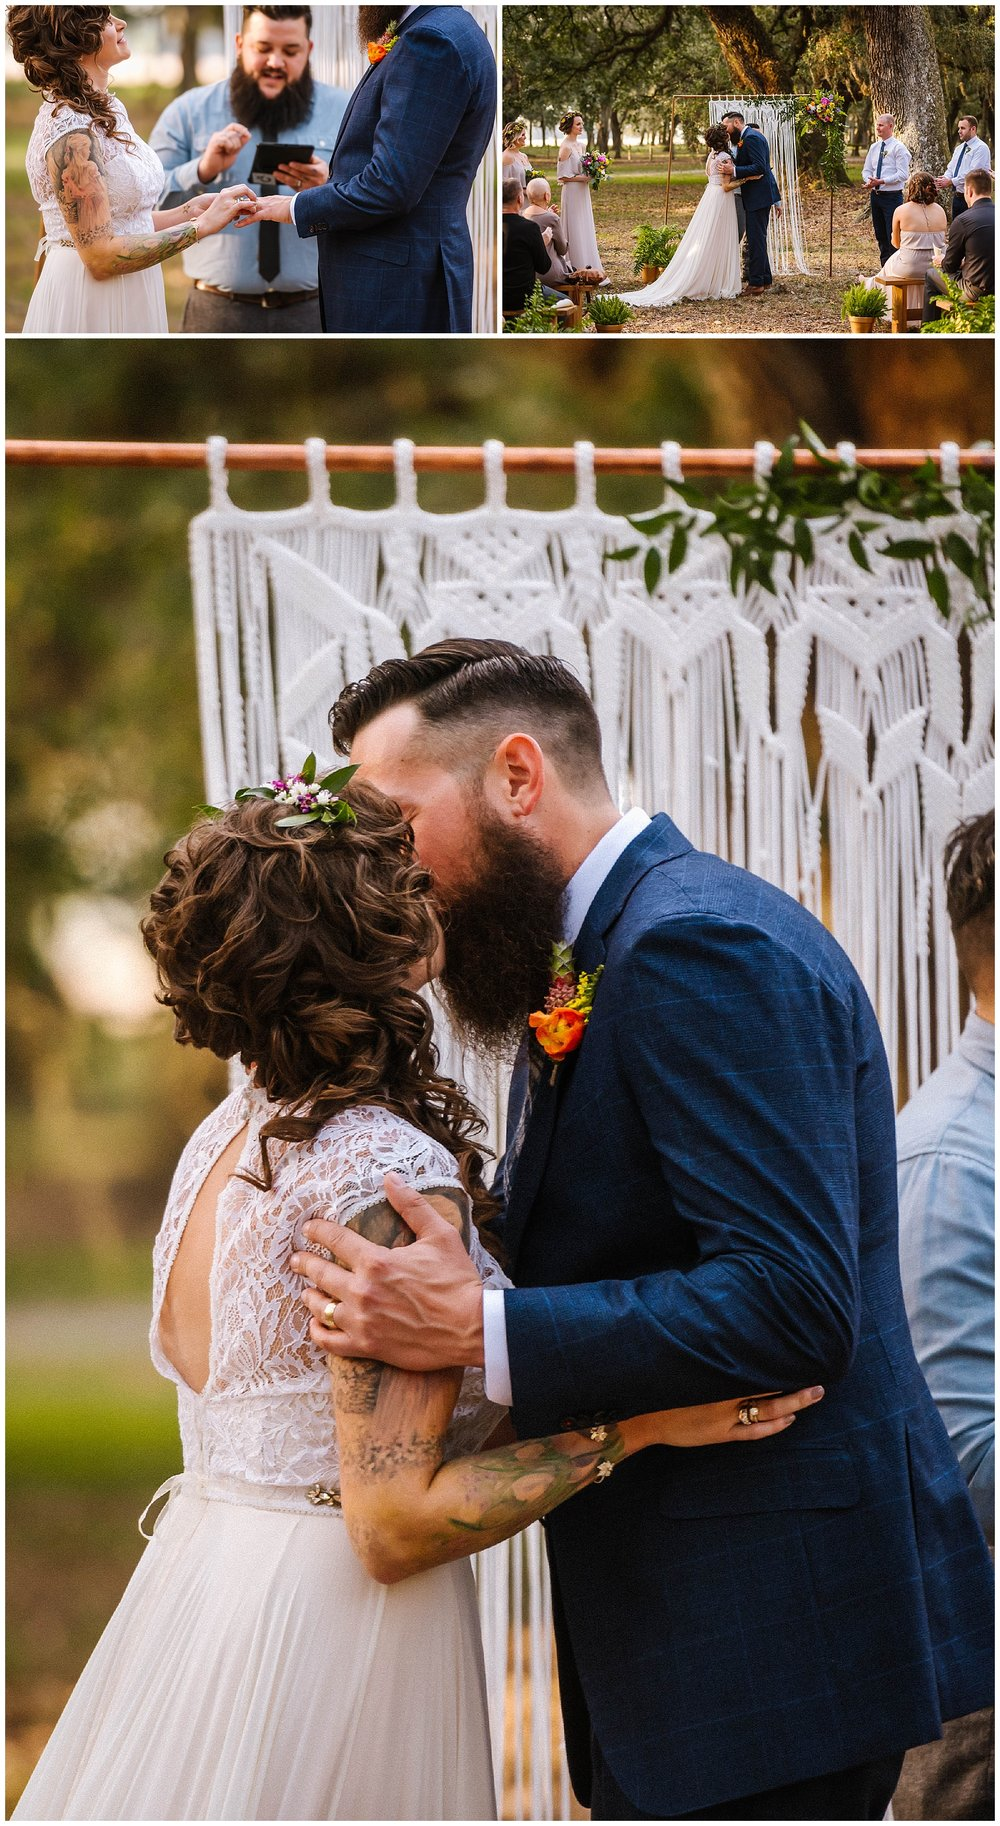 magical-outdoor-florida-wedding-smoke-bombs-flowers-crown-beard_0031.jpg